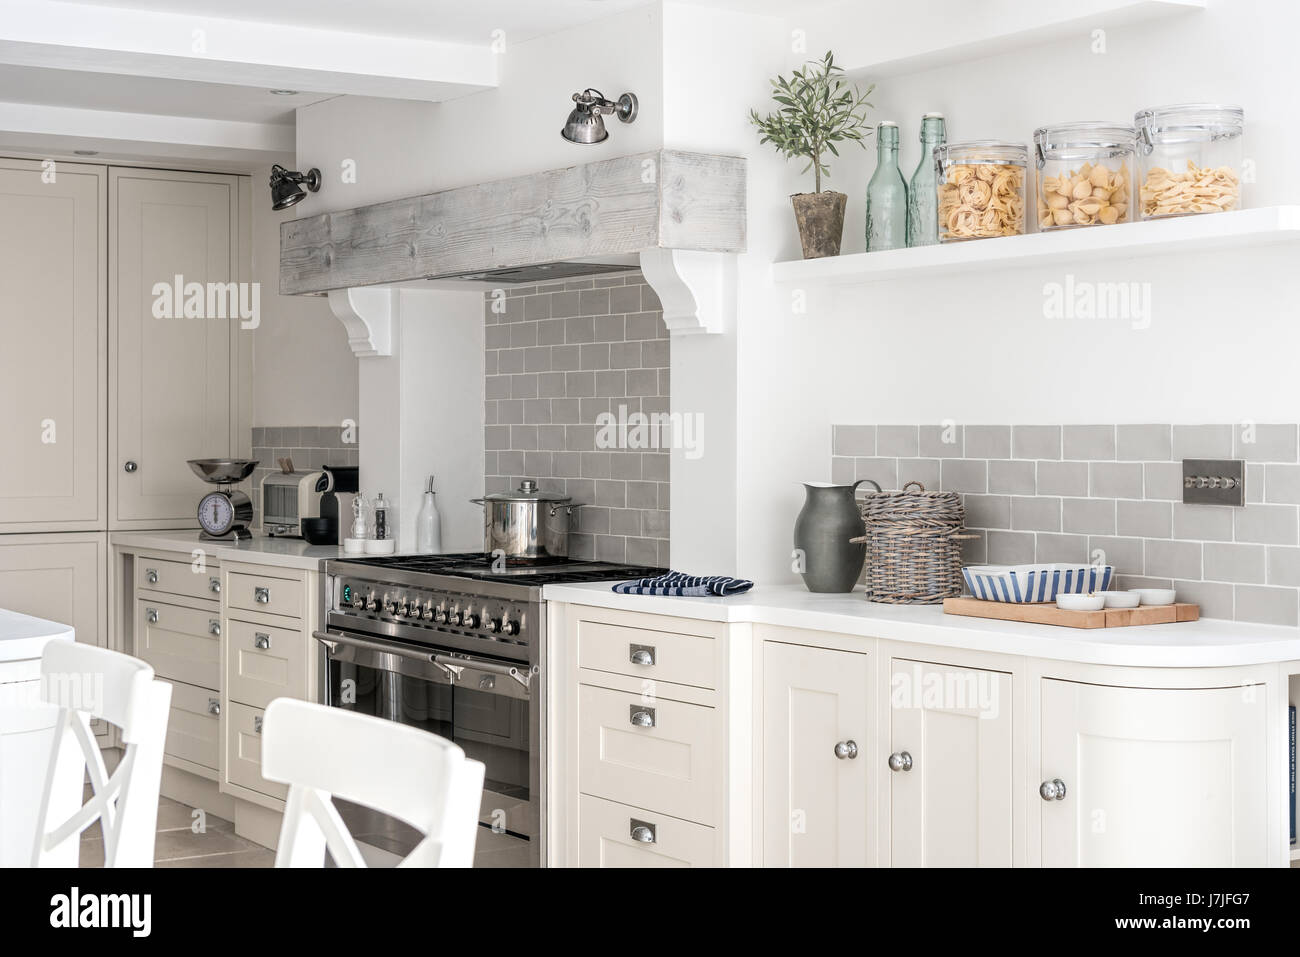 Whitewashed beam above range cooker in spacious kitchen. The tiles ...